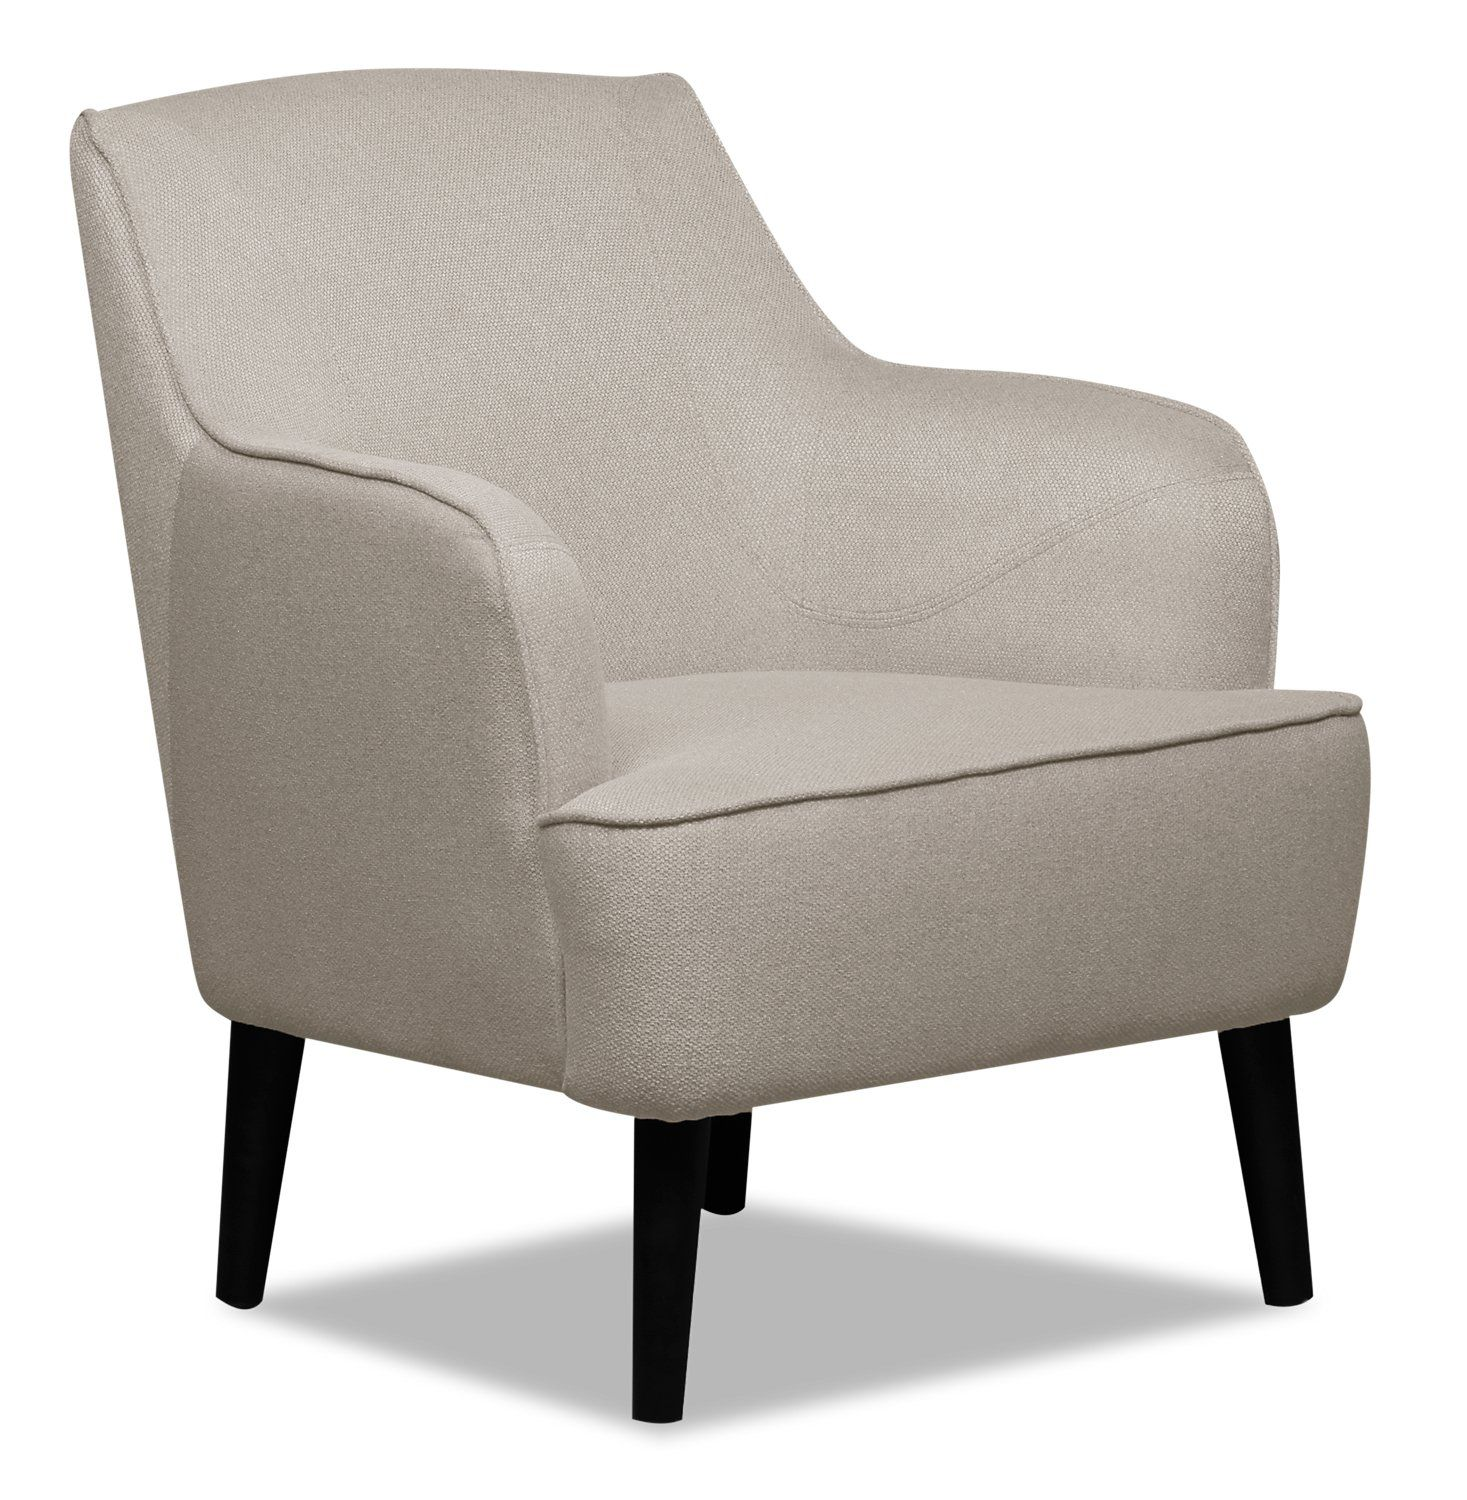 Aimy Linen Look Fabric Accent Chair Light Grey Fauteuil D